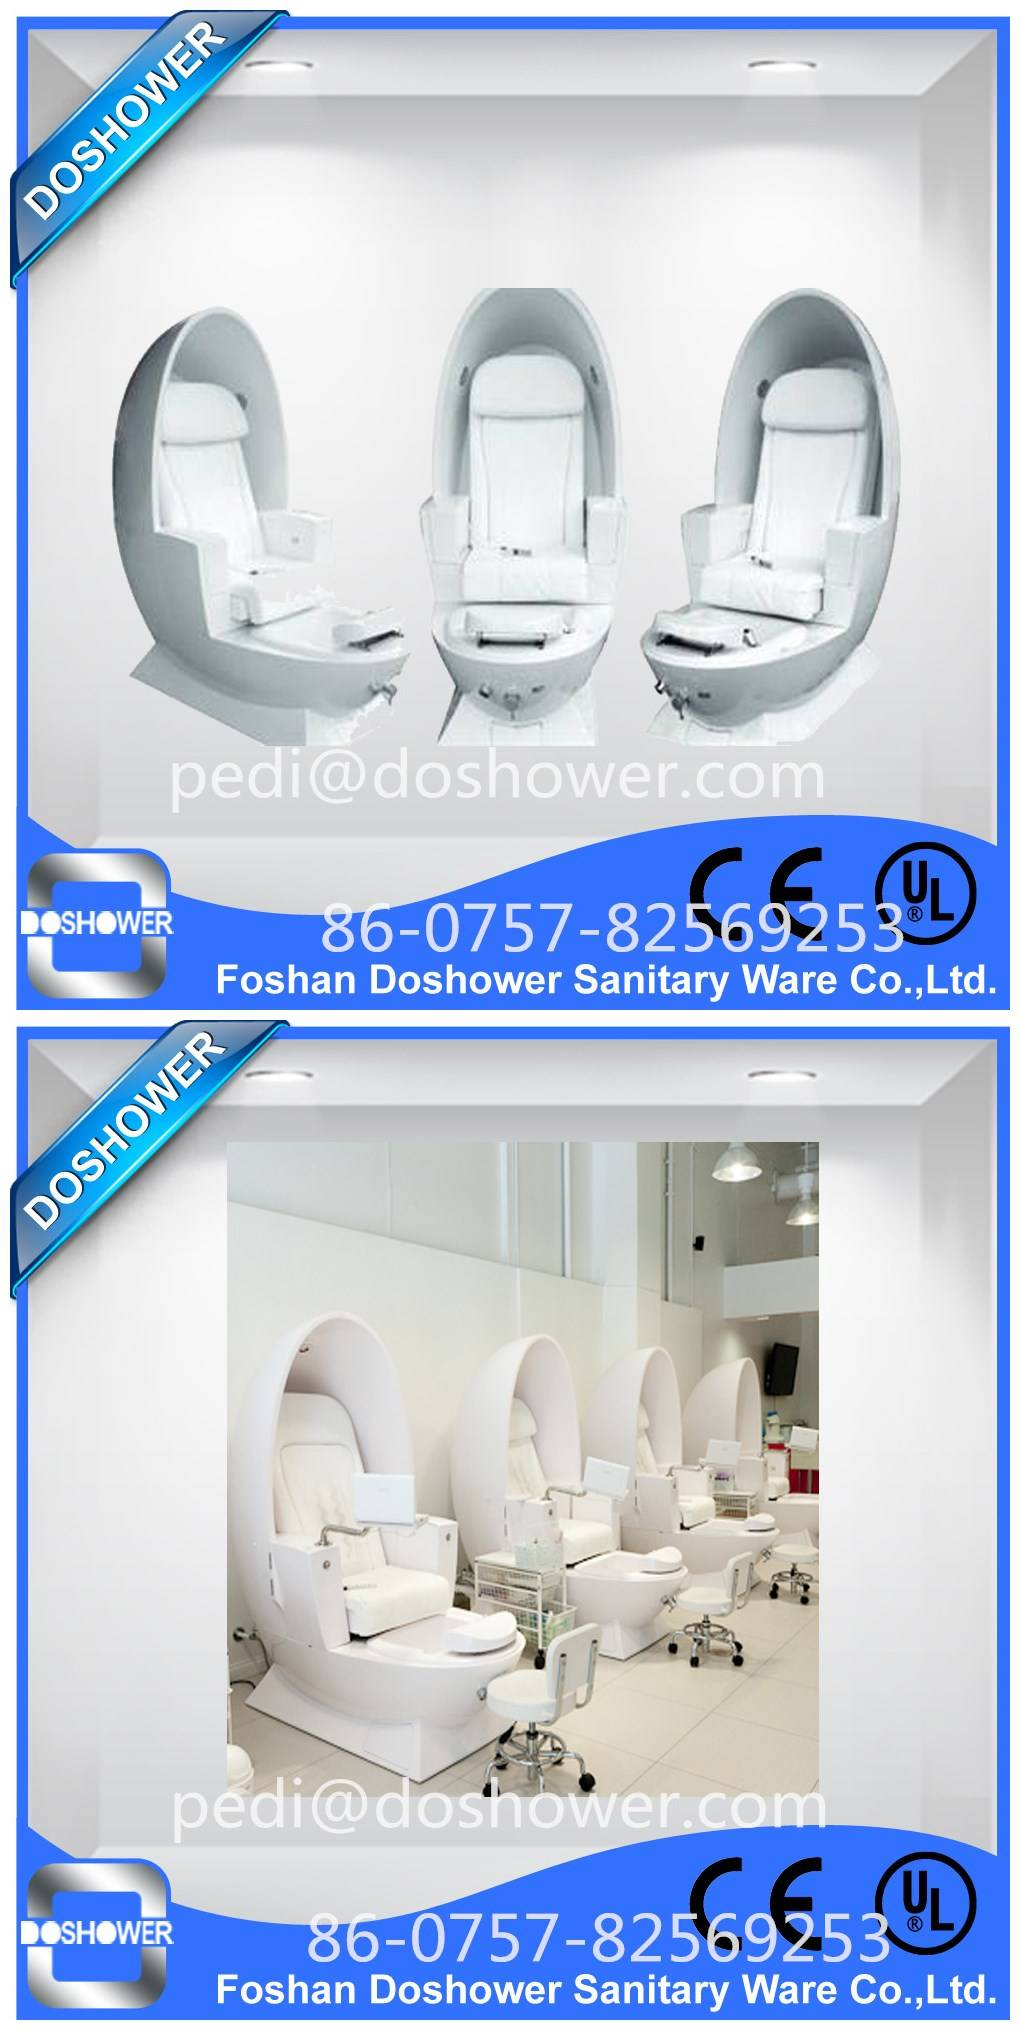 Doshower DS-Egg pedicure chair dimensions of pedicure machine with water spray with glass pedicure b